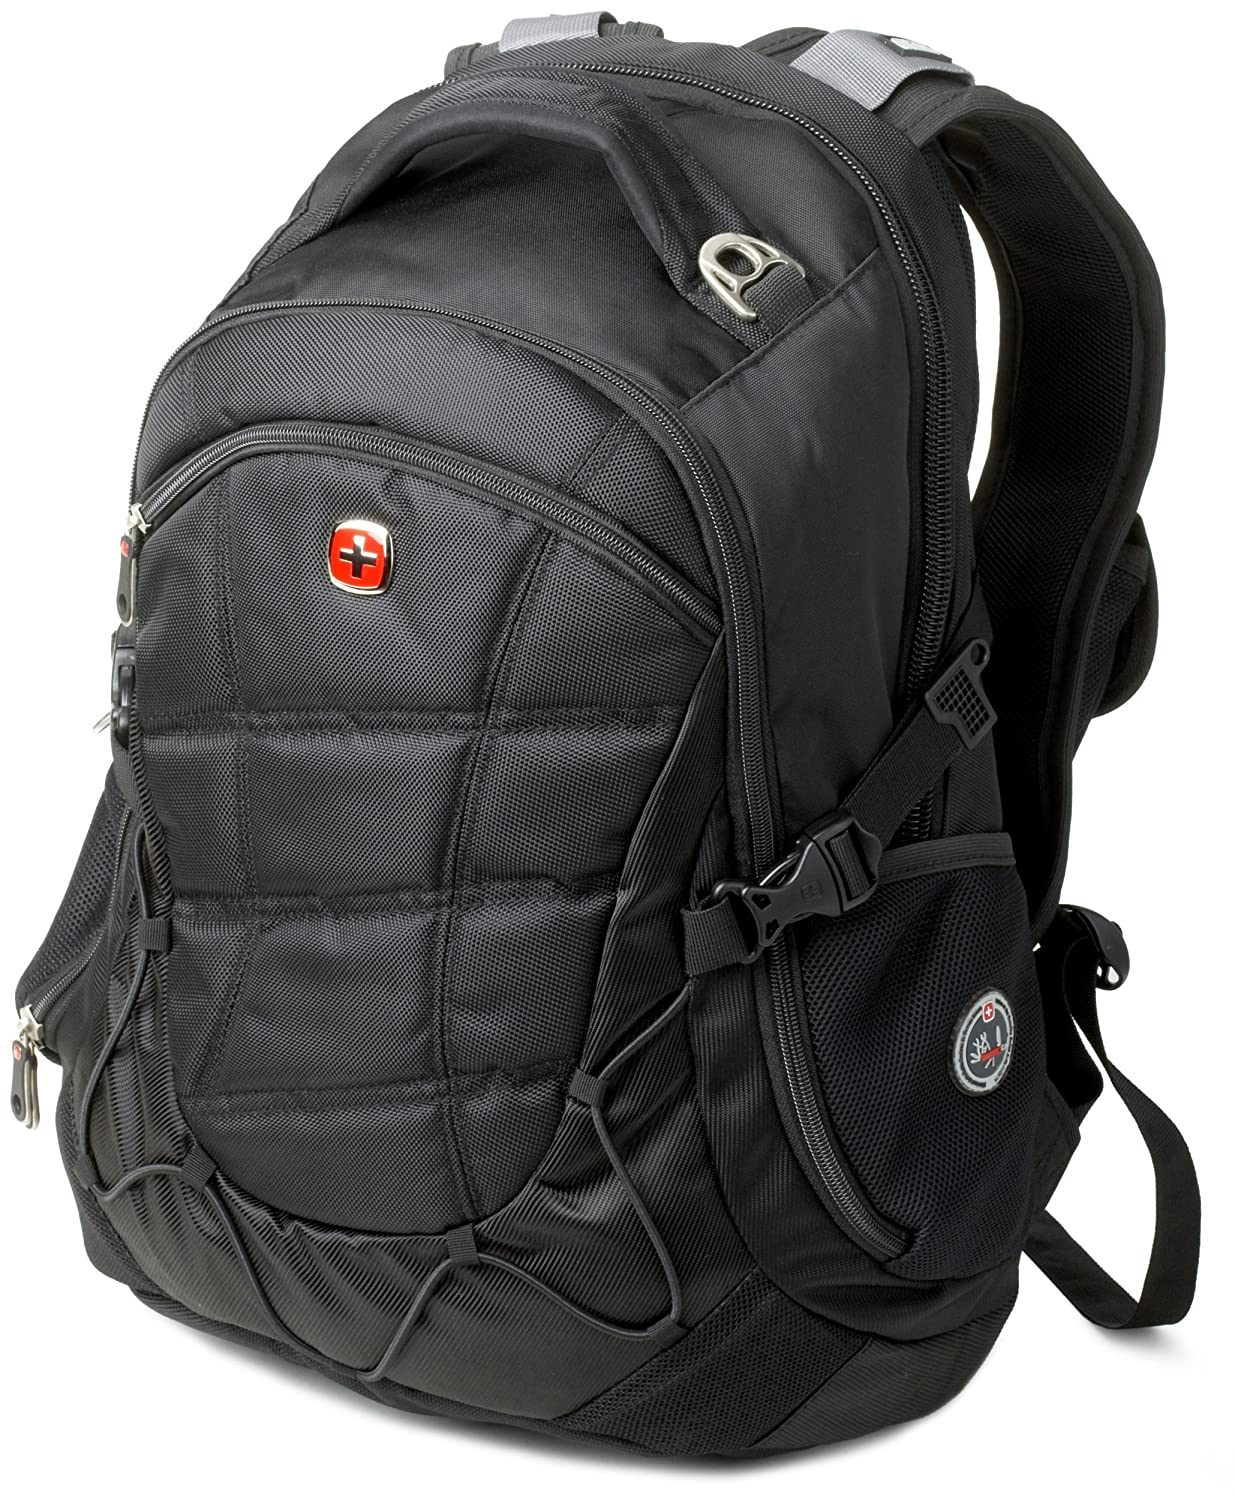 SwissGear Computer Backpack (Black) Fits Most 15.6-Inch Laptops  $63.97